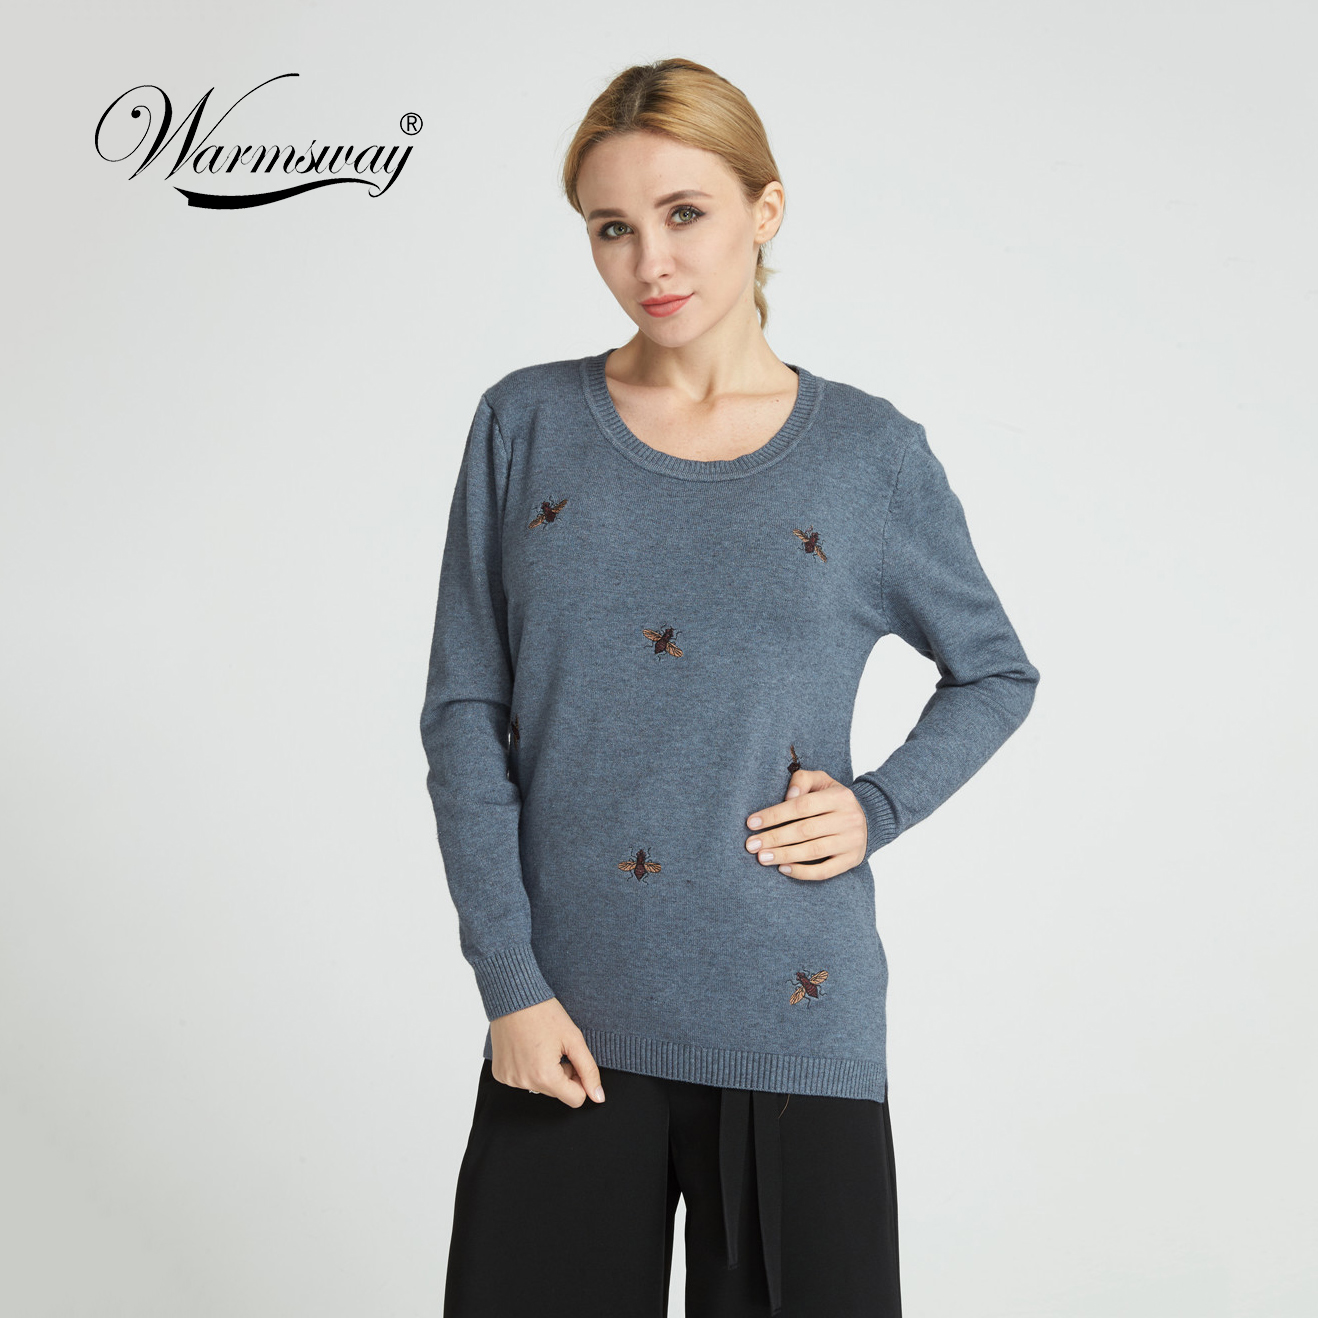 Warmsway 2018 Fall Winter Bee Embroidery Sweaters Plus Size 2XL Women Pullovers Oversized Knitted Tops female jumper C-153